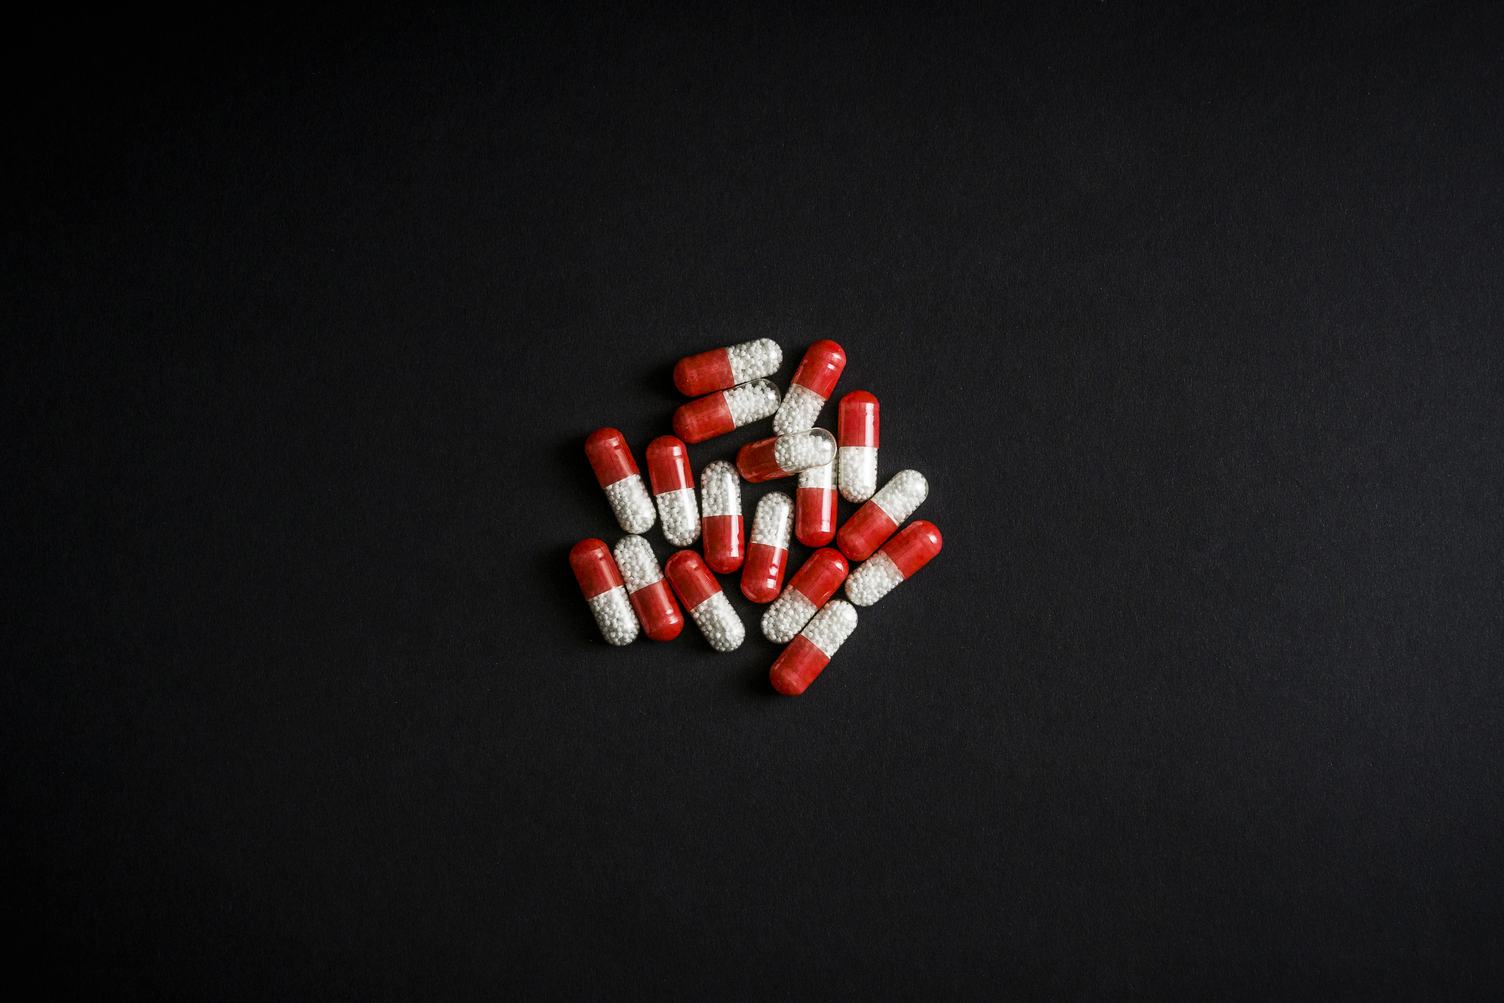 Medicine Pills Red and White Capsules